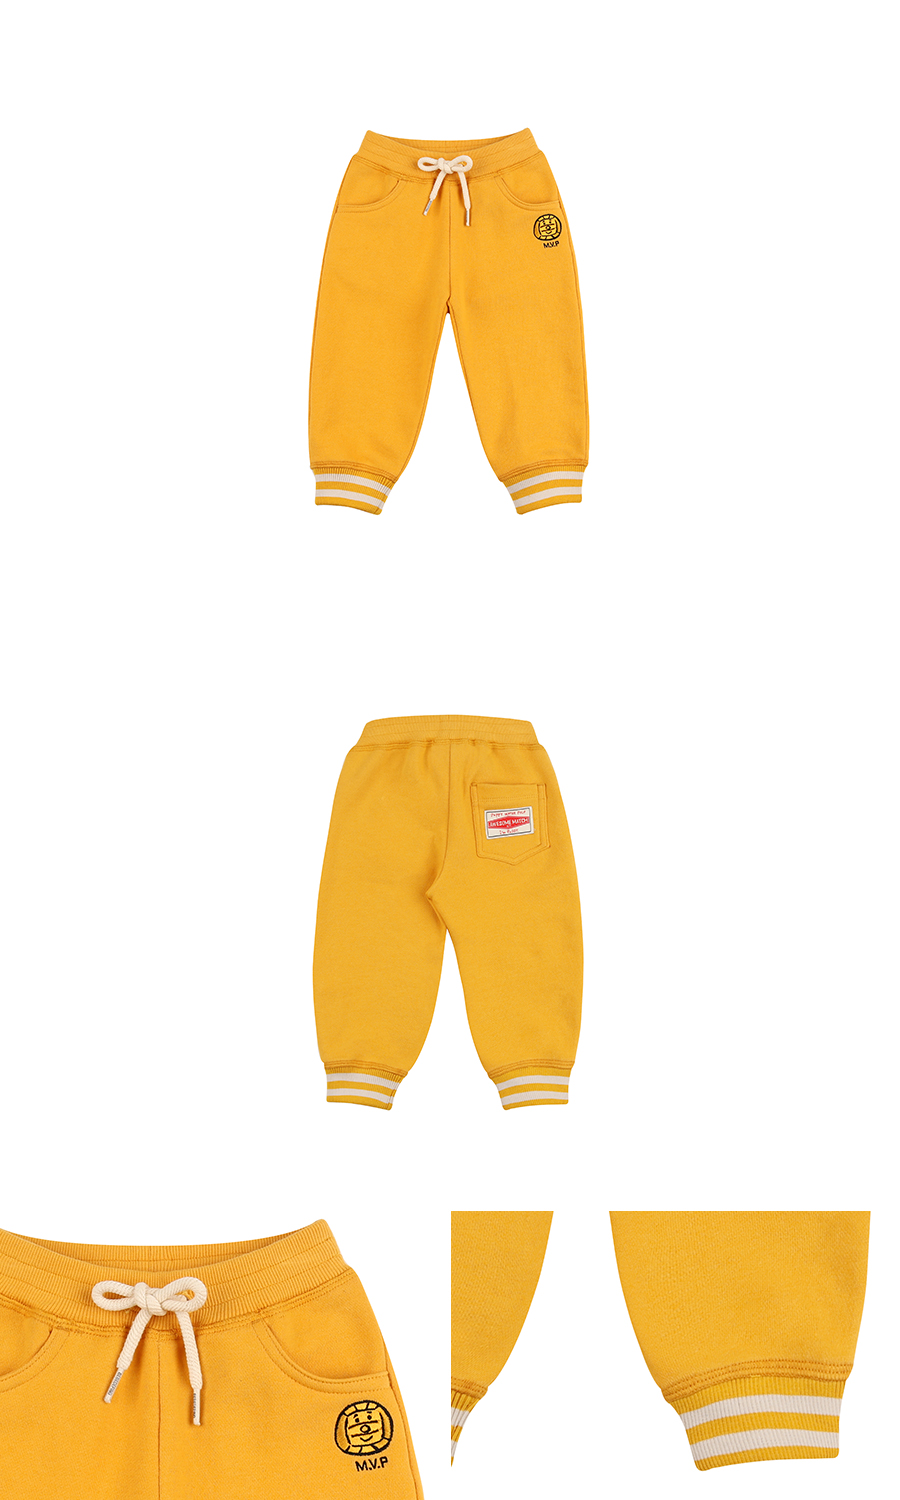 Water polo ball baby sweat pants 상세 이미지